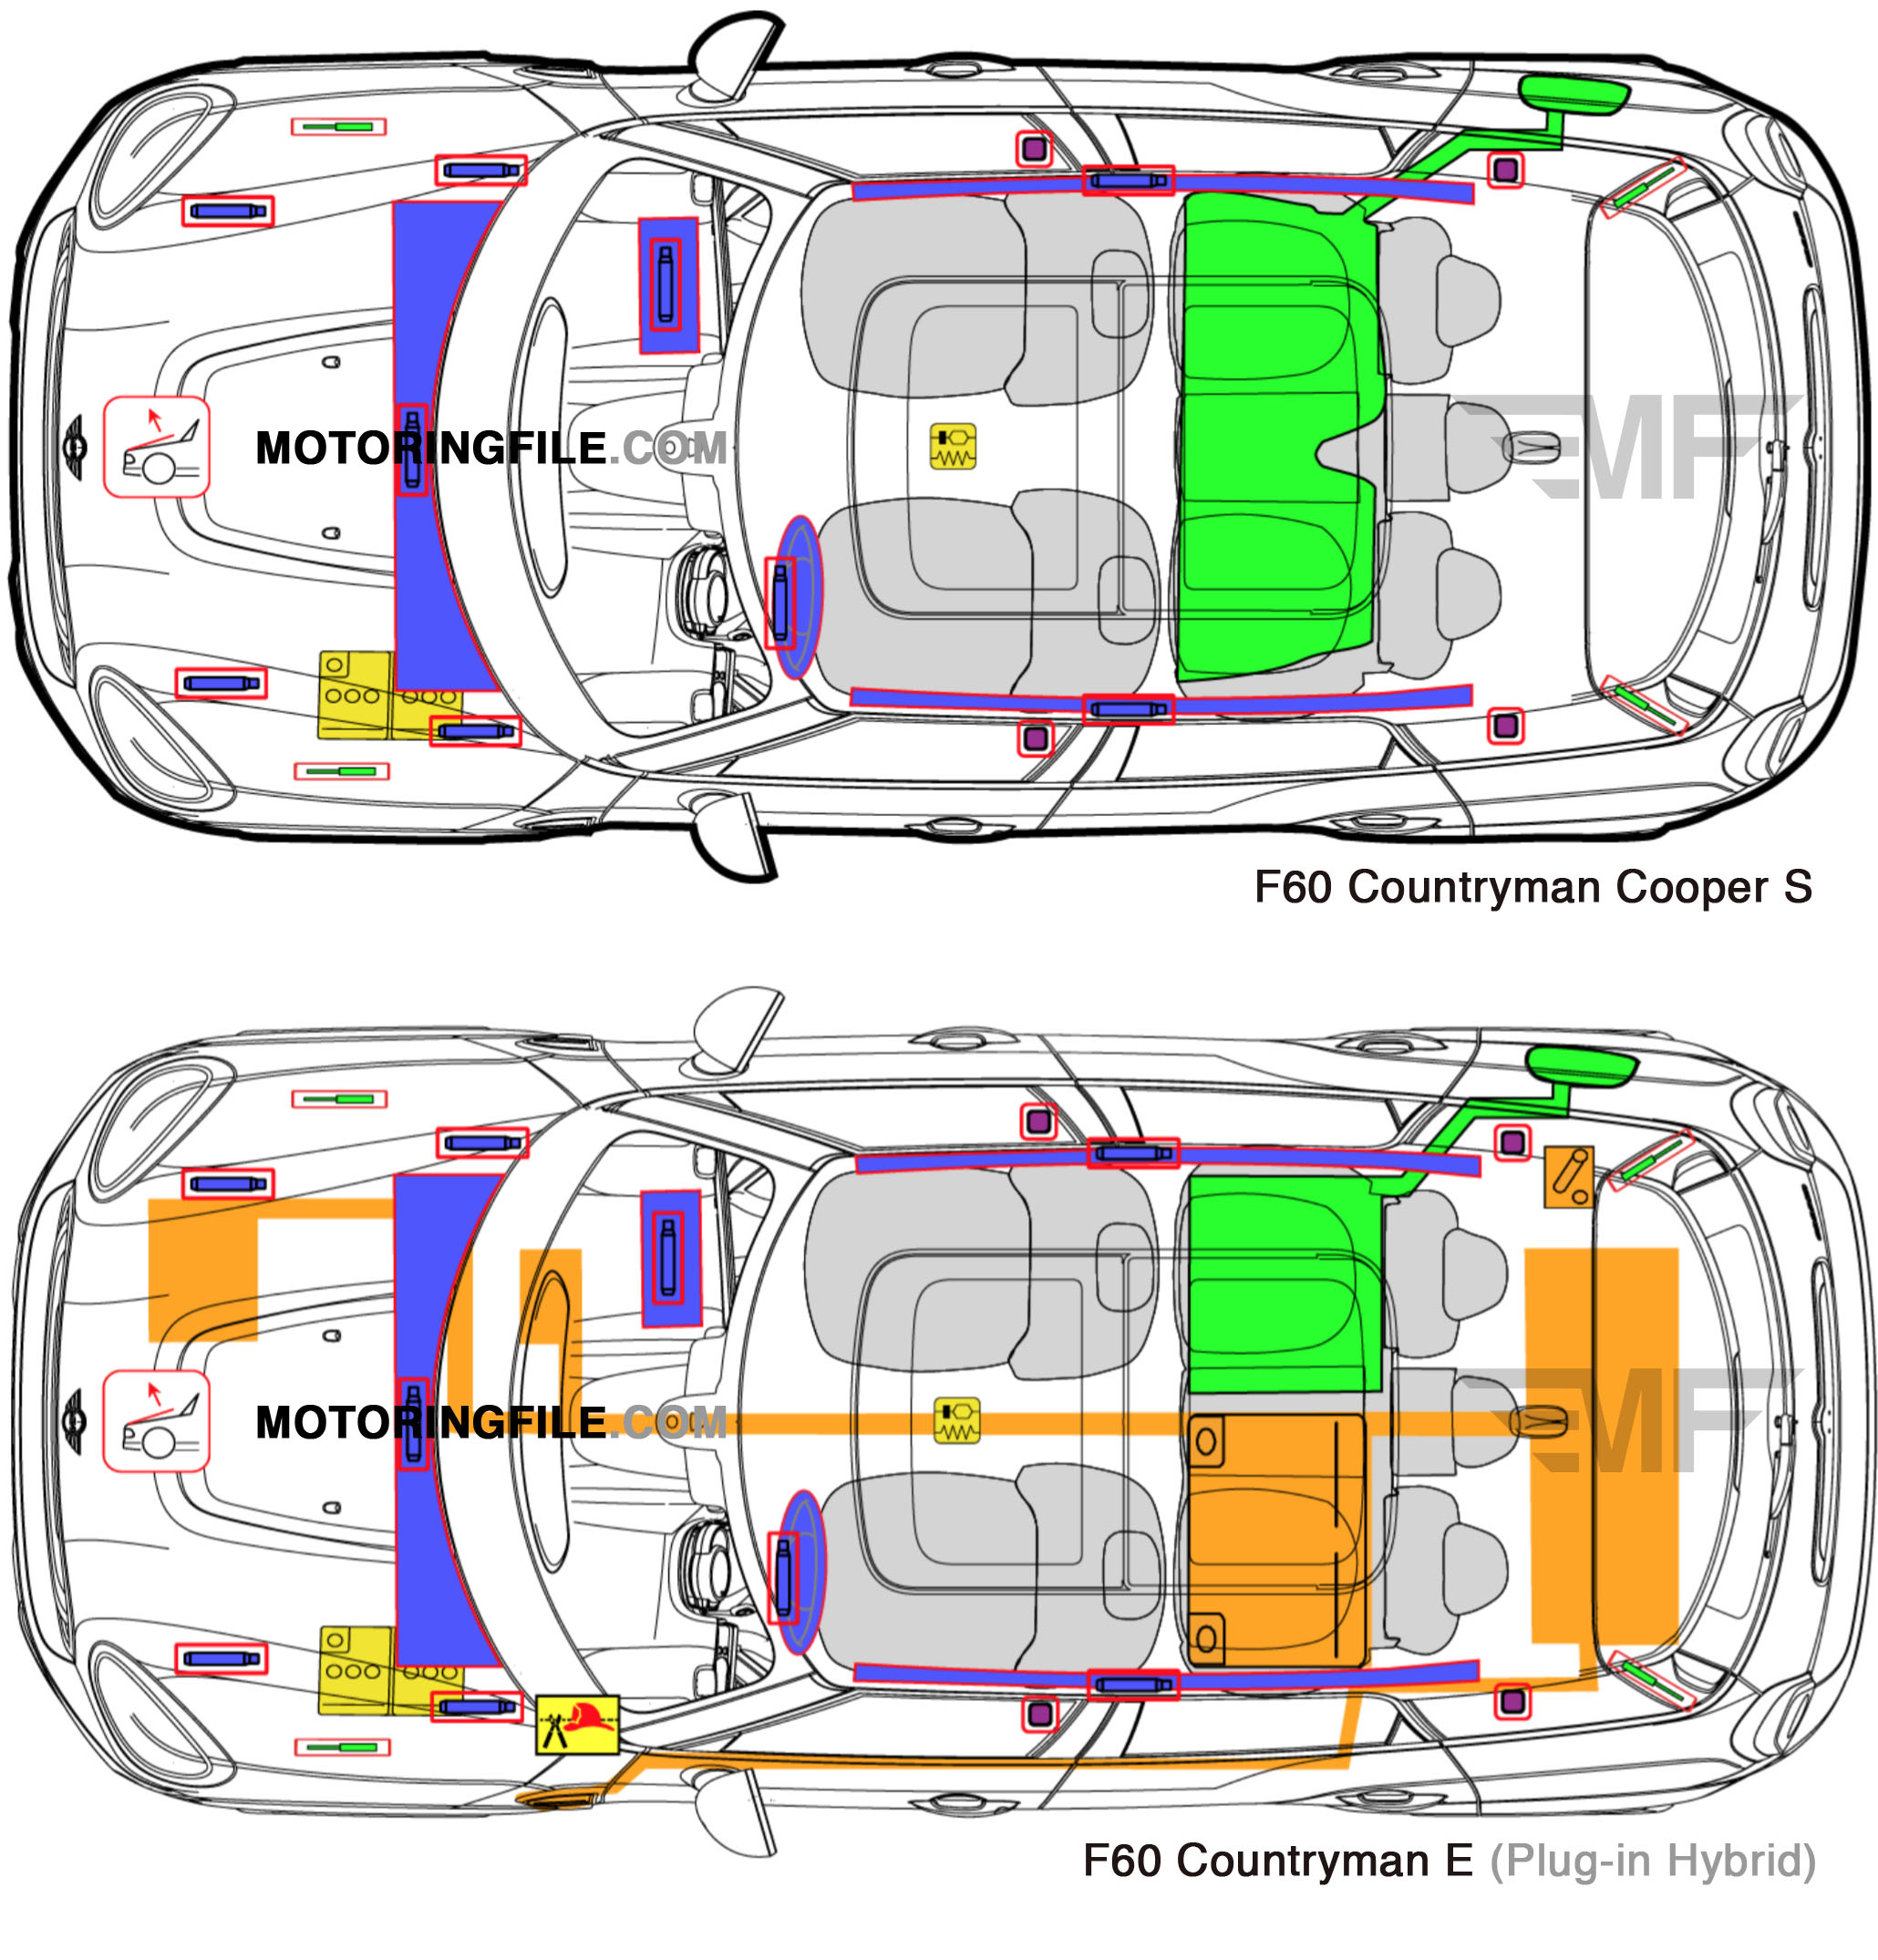 F60_E_COOPERS_Schematic1